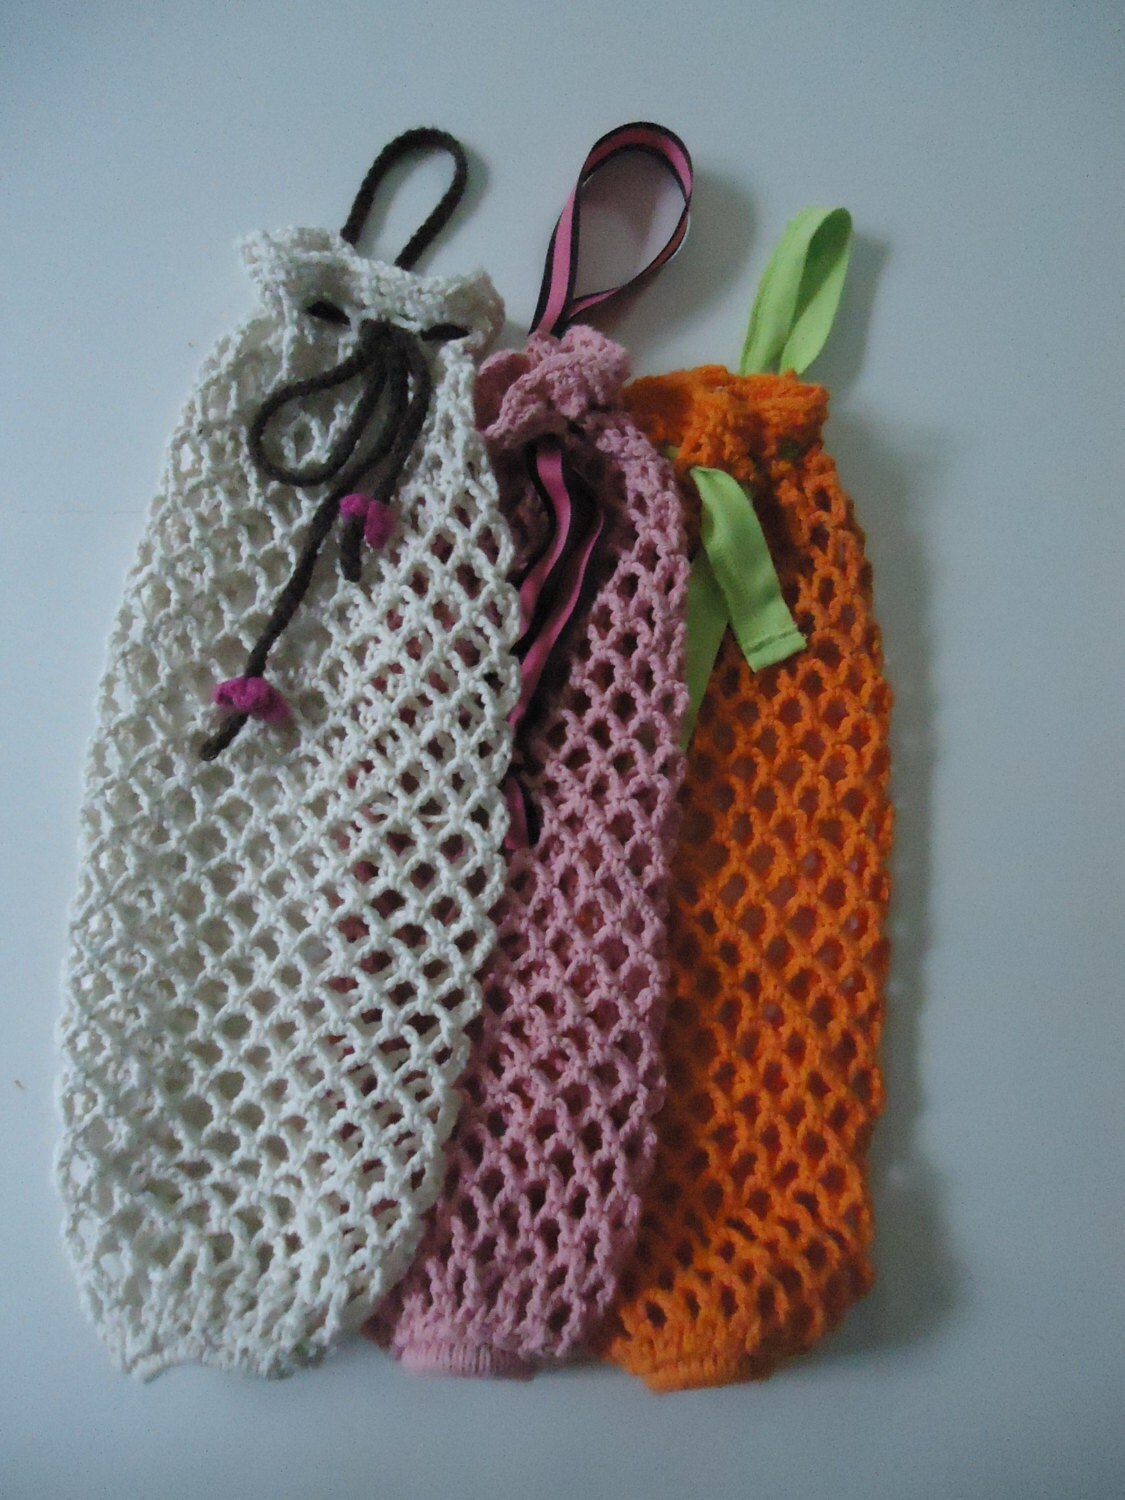 Crochet Pattern Plastic Bag Holder : Plastic Bag Holder Crochet Pattern by GetYourKnit2gether ...